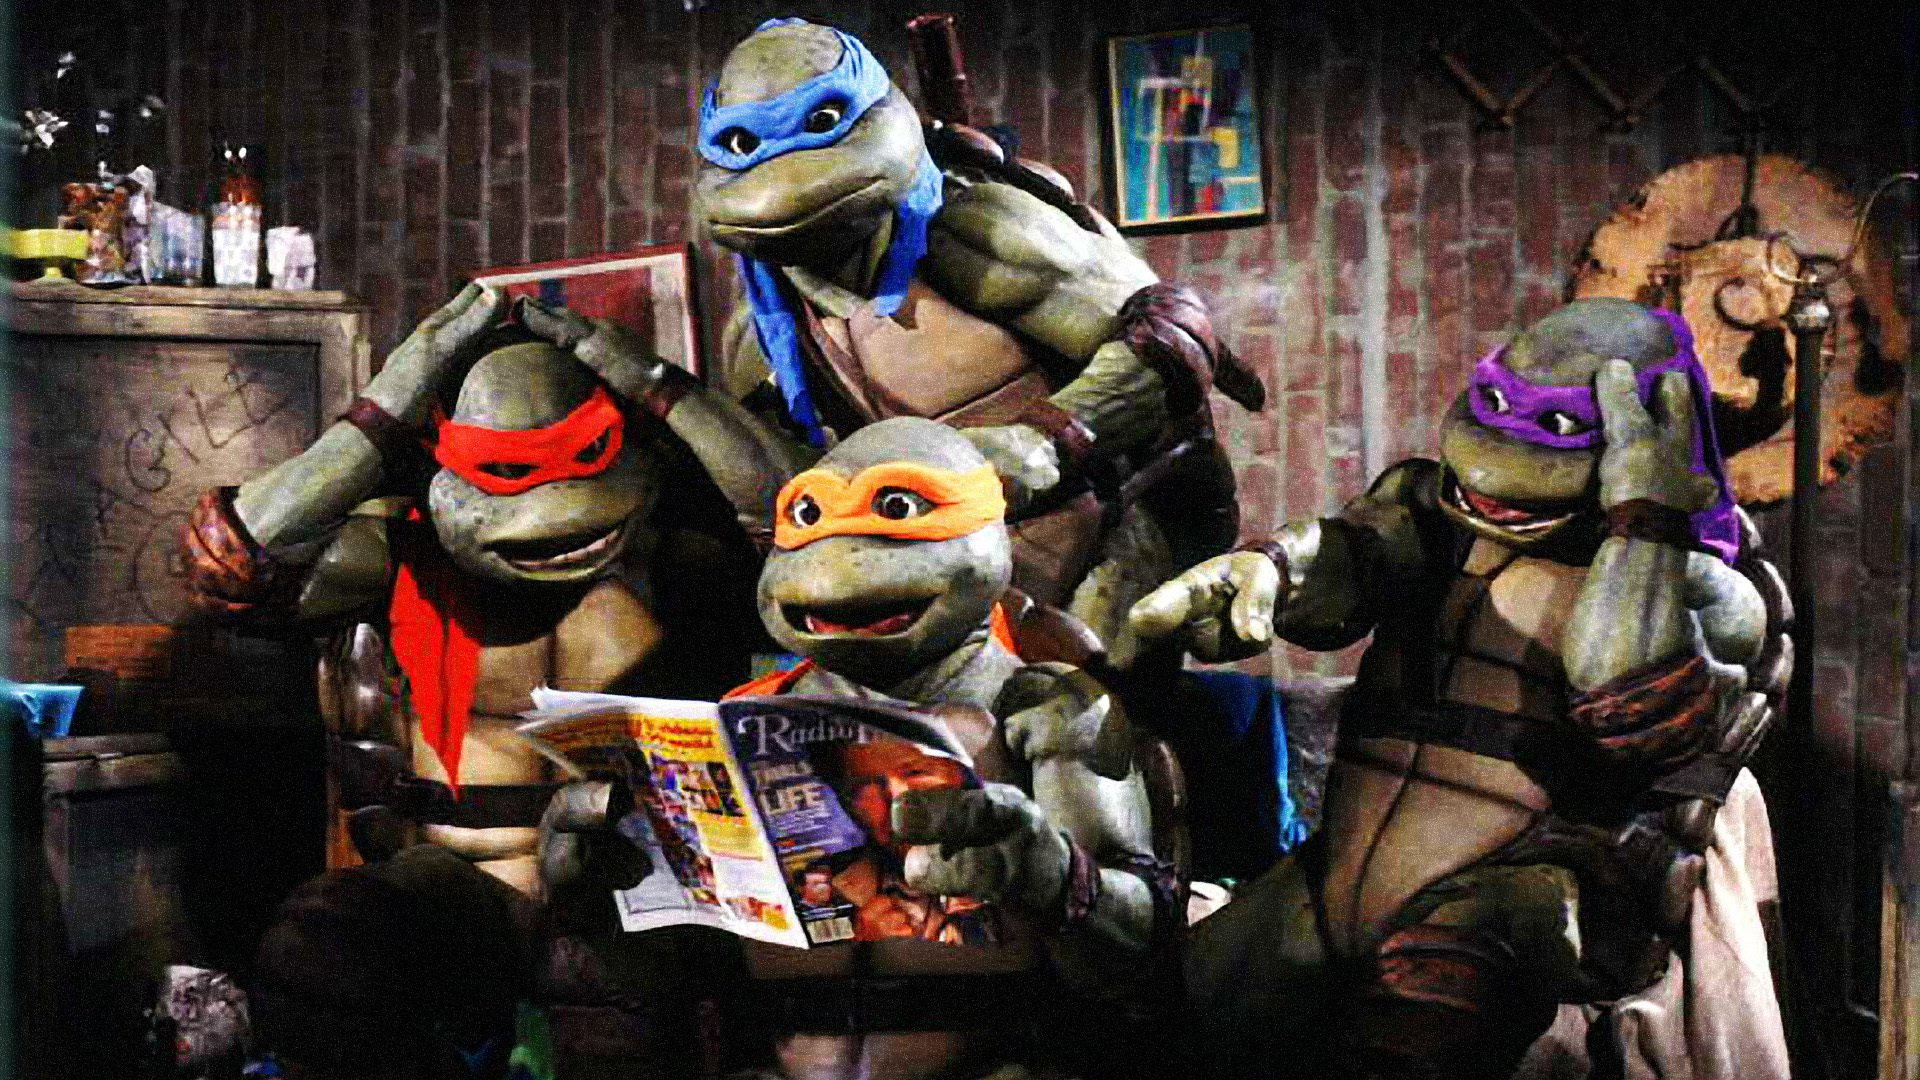 The Turtles in their sewer lair in Teenage Mutant Ninja Turtles (1990)